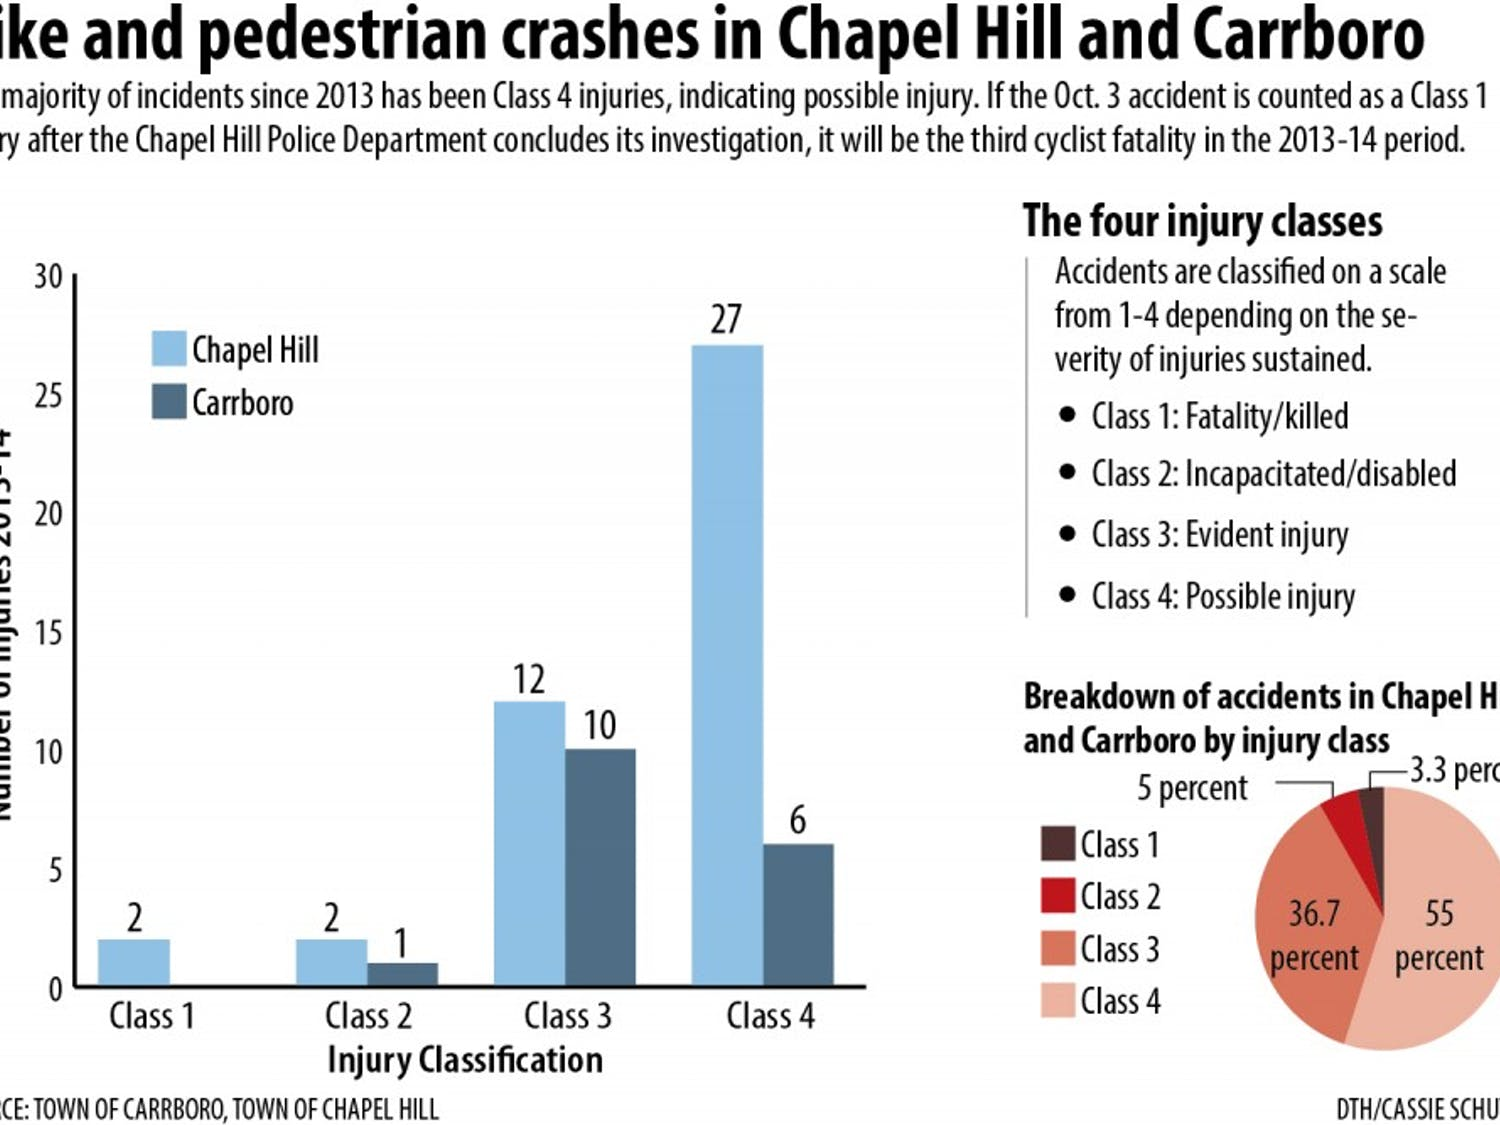 CORRECTION: Due to a reporting error, a previous version of this graphic included incorrect data about crashes involving bicyclists and pedestrians. Between 2013 and 2014, there were 43 bicyclists and pedestrians injured in crashes in Chapel Hill. Of those, two were Class 1 injuries, two were Class 2 injuries, 12 were Class 3 injuries and 27 were Class 4 injuries. Police have classified the Oct. 3 fatality as a Class 1 injury. The graphic has been updated to reflect these changes. The Daily Tar Heel apologizes for the error.